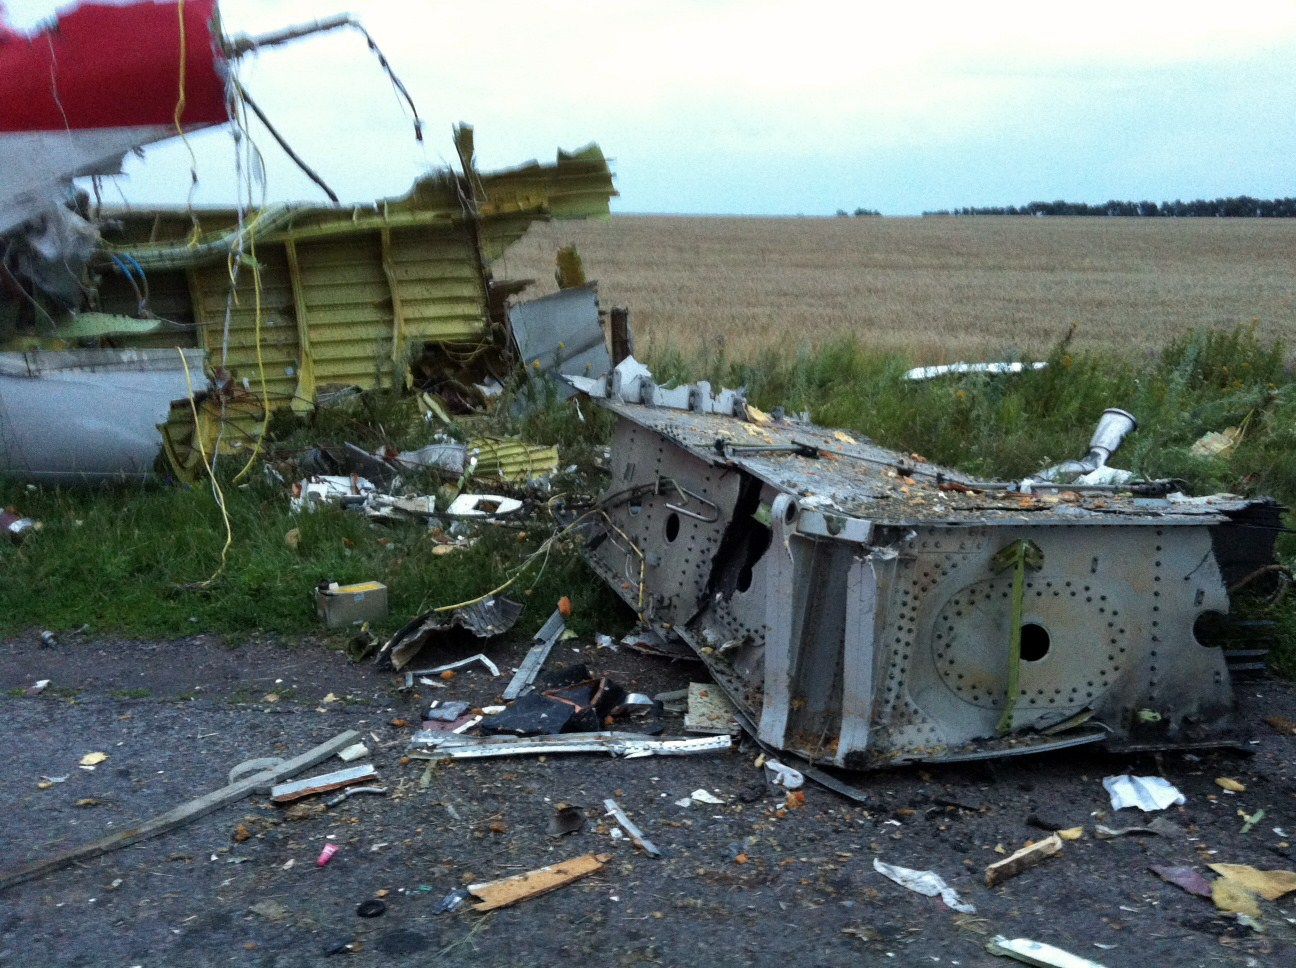 Wreckage of the malaysian airliner carrying 298 people from Amsterdam to Kuala Lumpur after it crashed, in rebel-held east Ukraine July 17, 2014.